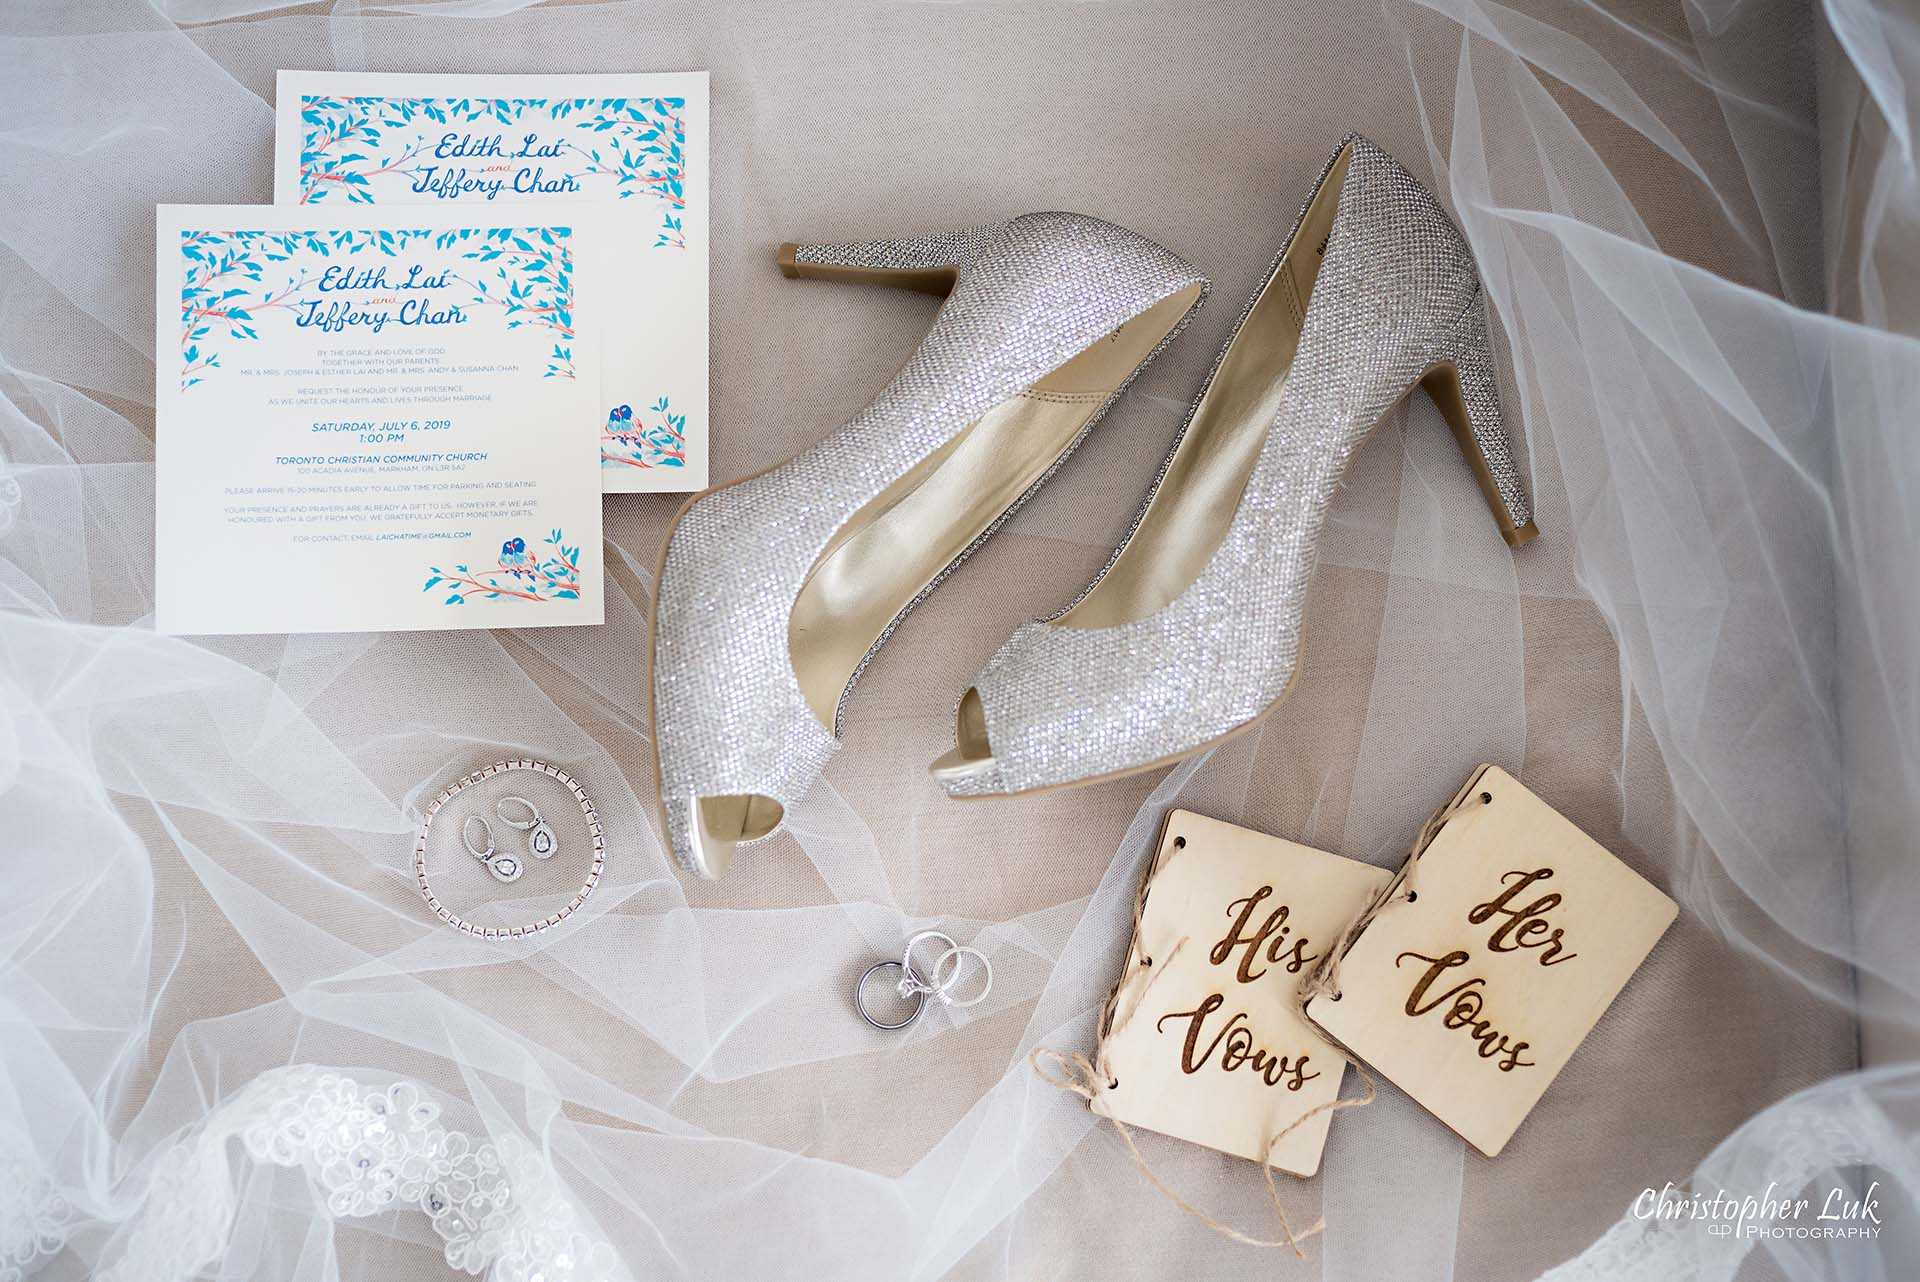 Christopher Luk Toronto Christian Community Church Kleinburg McMichael Art Gallery Vaughan Wedding Photographer Scarborough Wedding Details Bride Bridal Crystal Studded Shiny Glitter Silver High Heel Shoes Peep Toe Pumps Veil Laser Engraved Wooden Vow Vows Book Books Flat Lay Layflat Invitation Stationery Stationary Names Calligraphy Header Design Bracelet Earrings Rings Bands